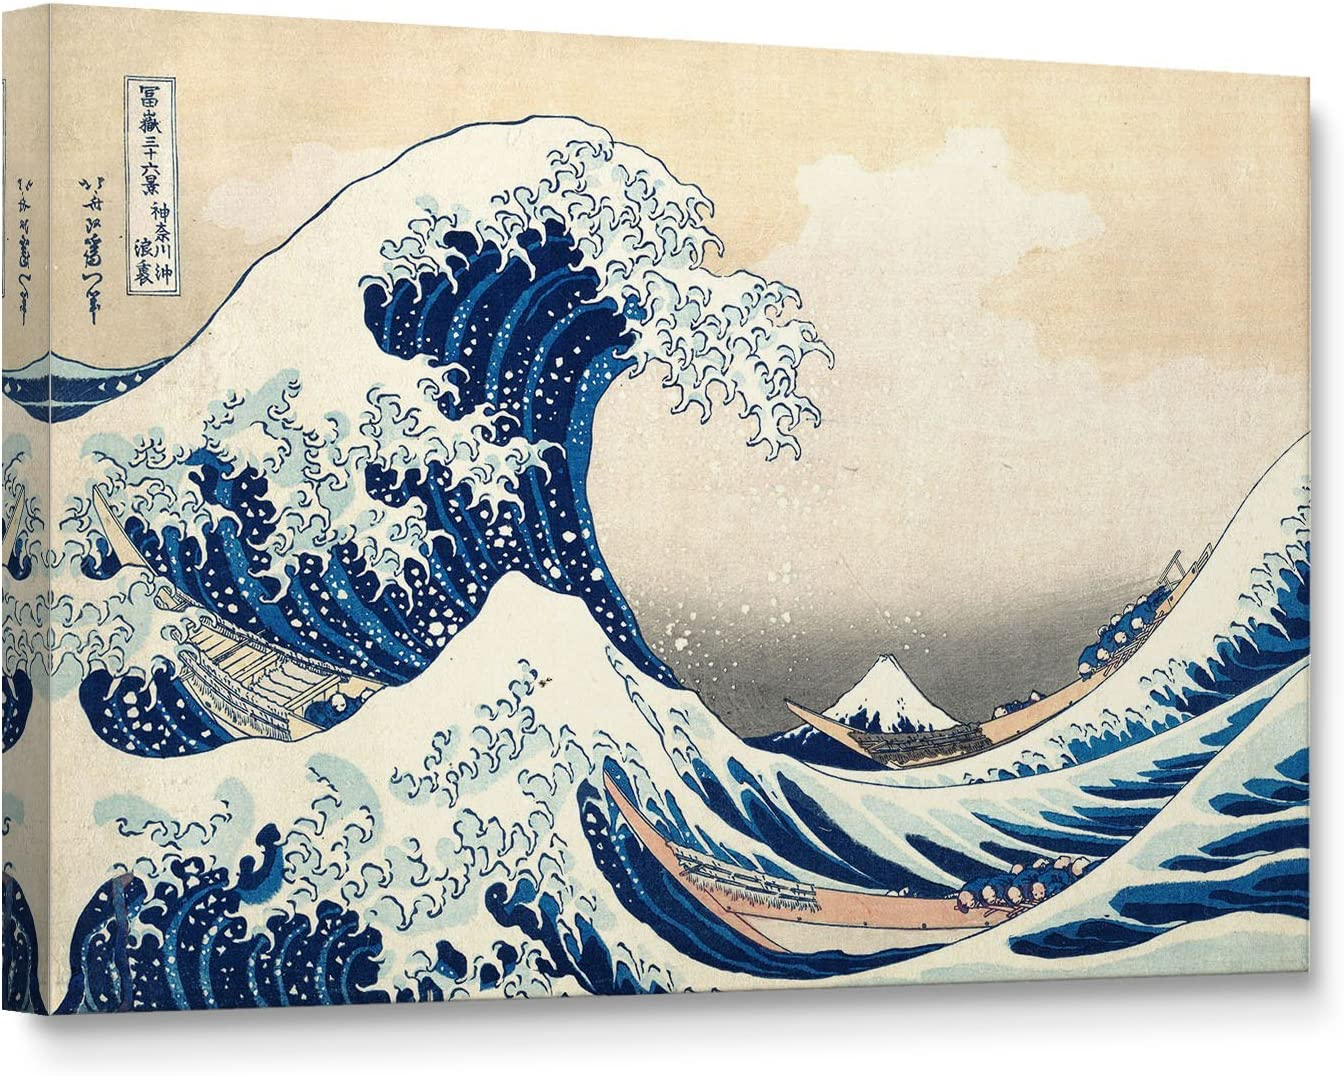 """Niwo Art (TM - The Great Wave Off Kanagawa, by Katsushika Hokusai Reproduction - Giclee Wall Art for Home Decor, Gallery Wrapped, Stretched, Framed Ready to Hang (18""""x12""""x3/4"""")"""